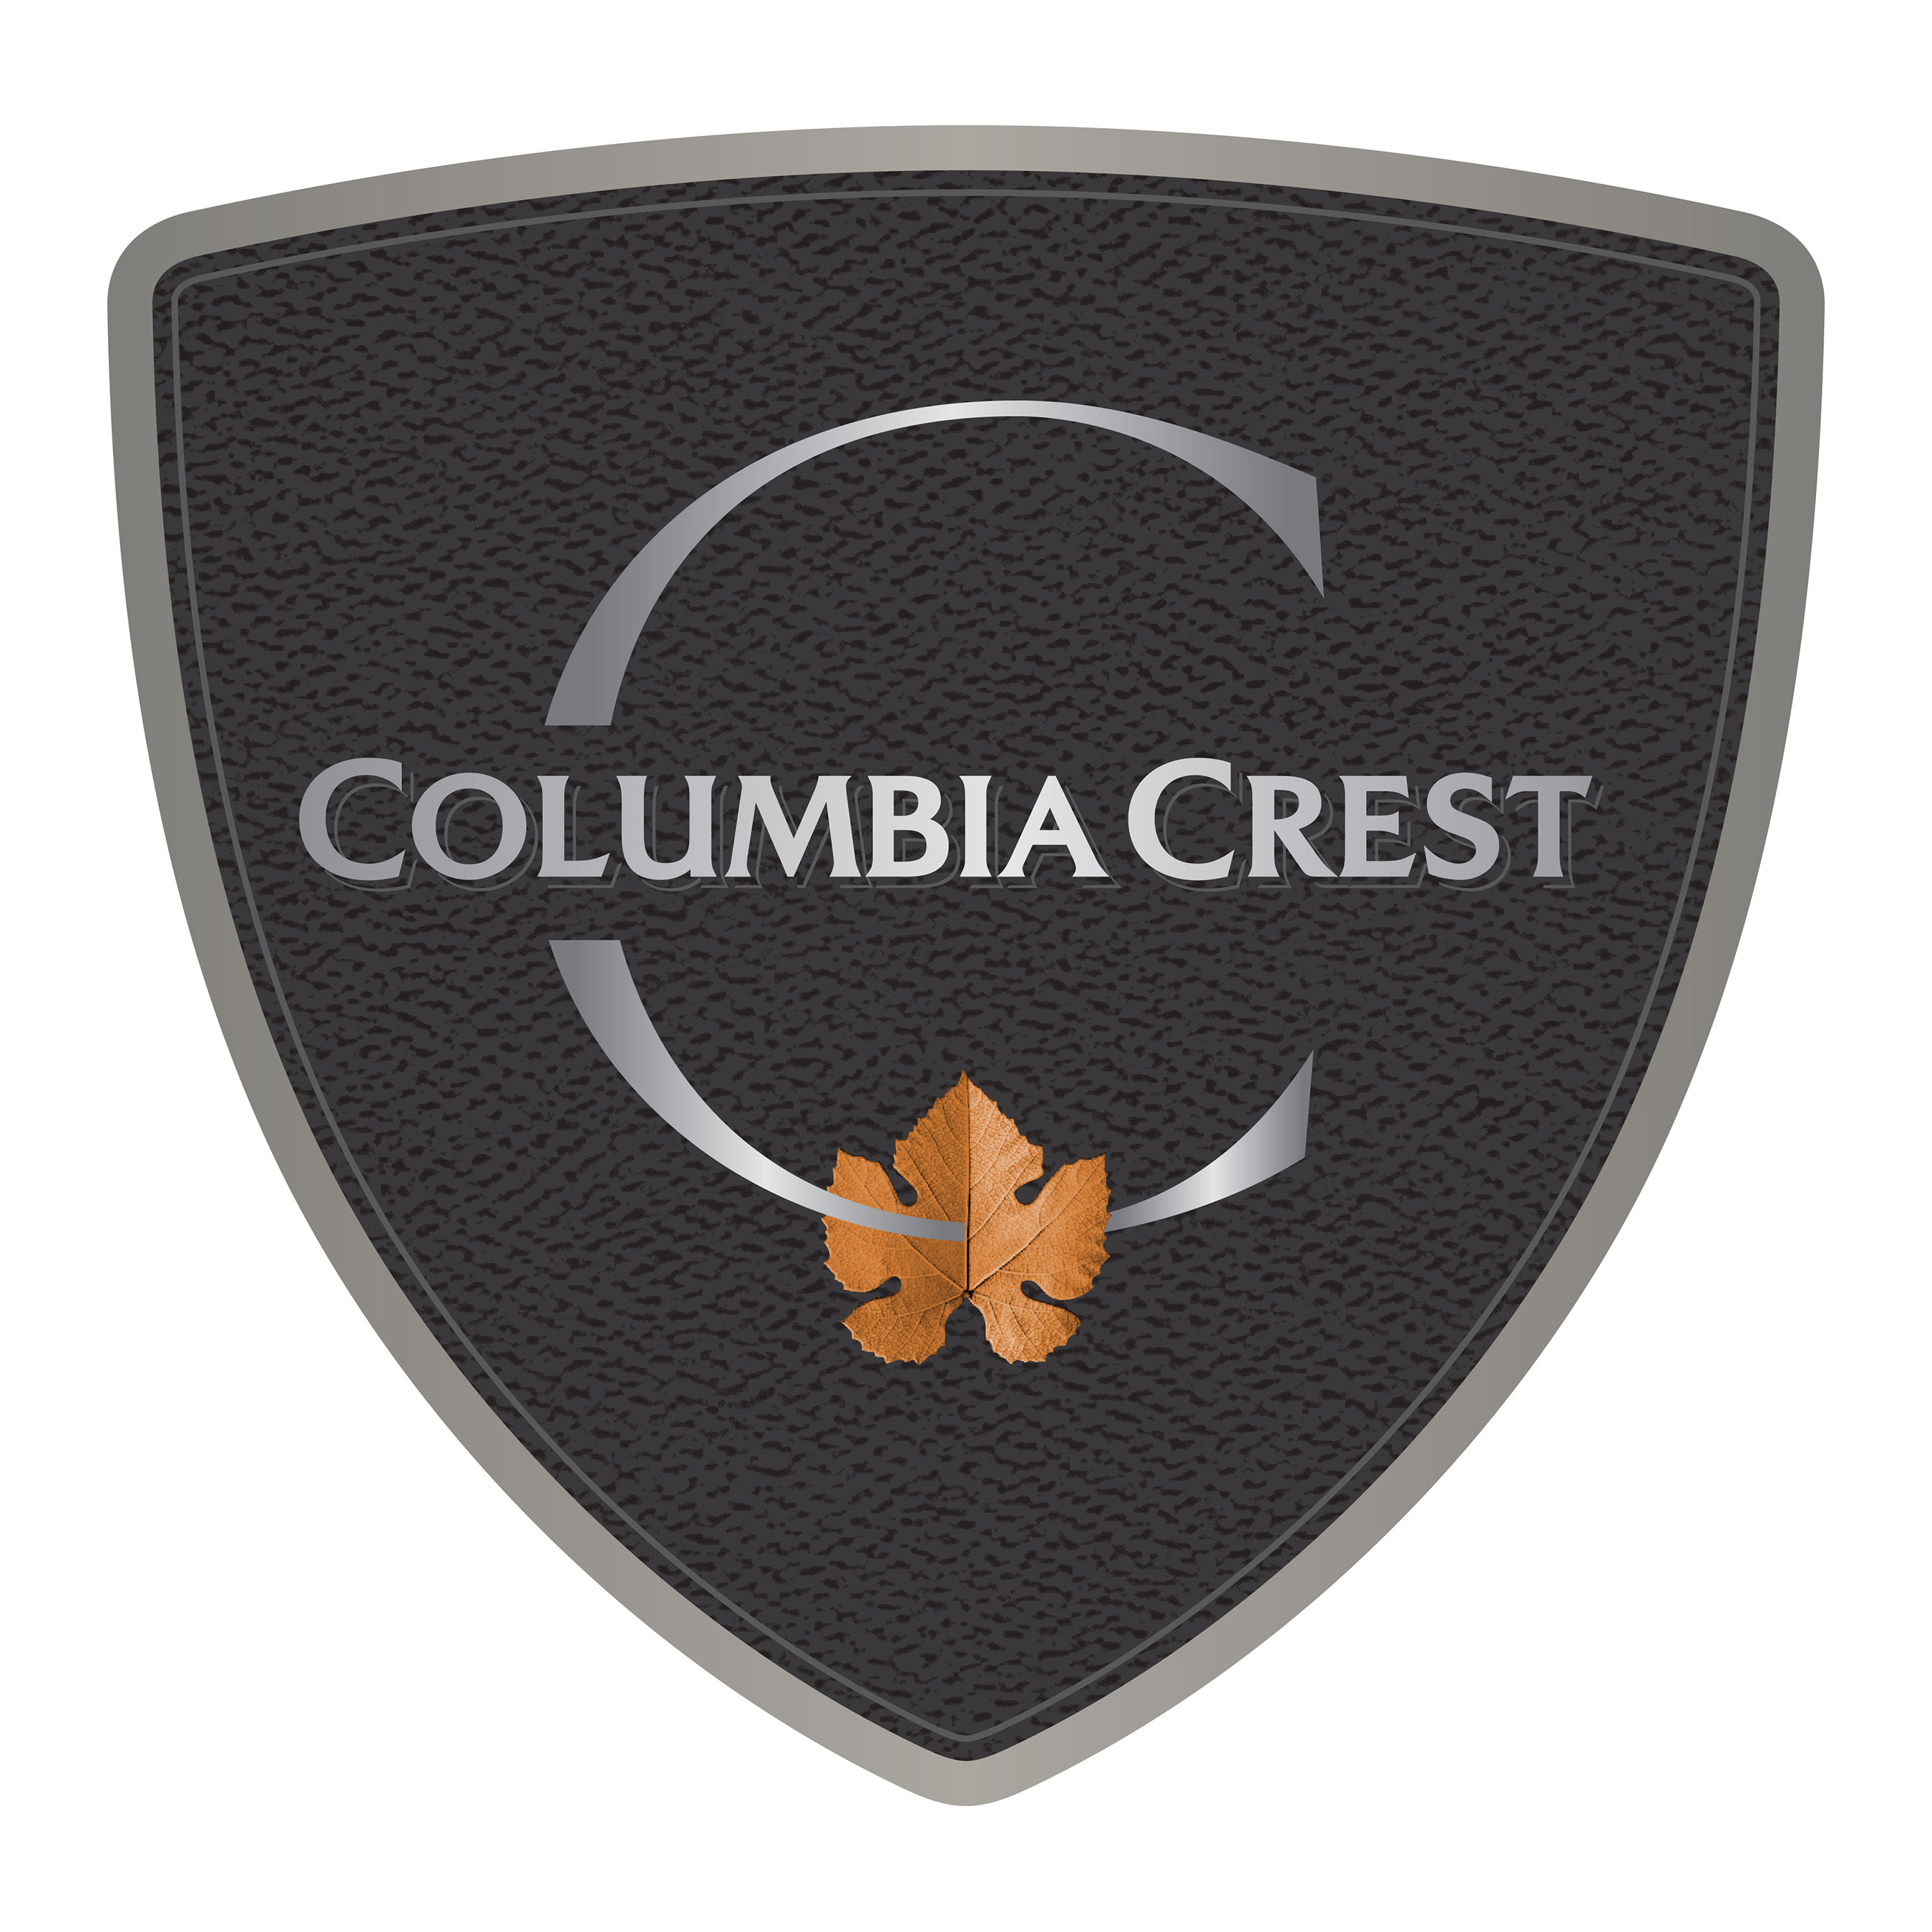 Founded in 1983, Columbia Crest is dedicated to celebrating the rich heritage of Washington winemaking